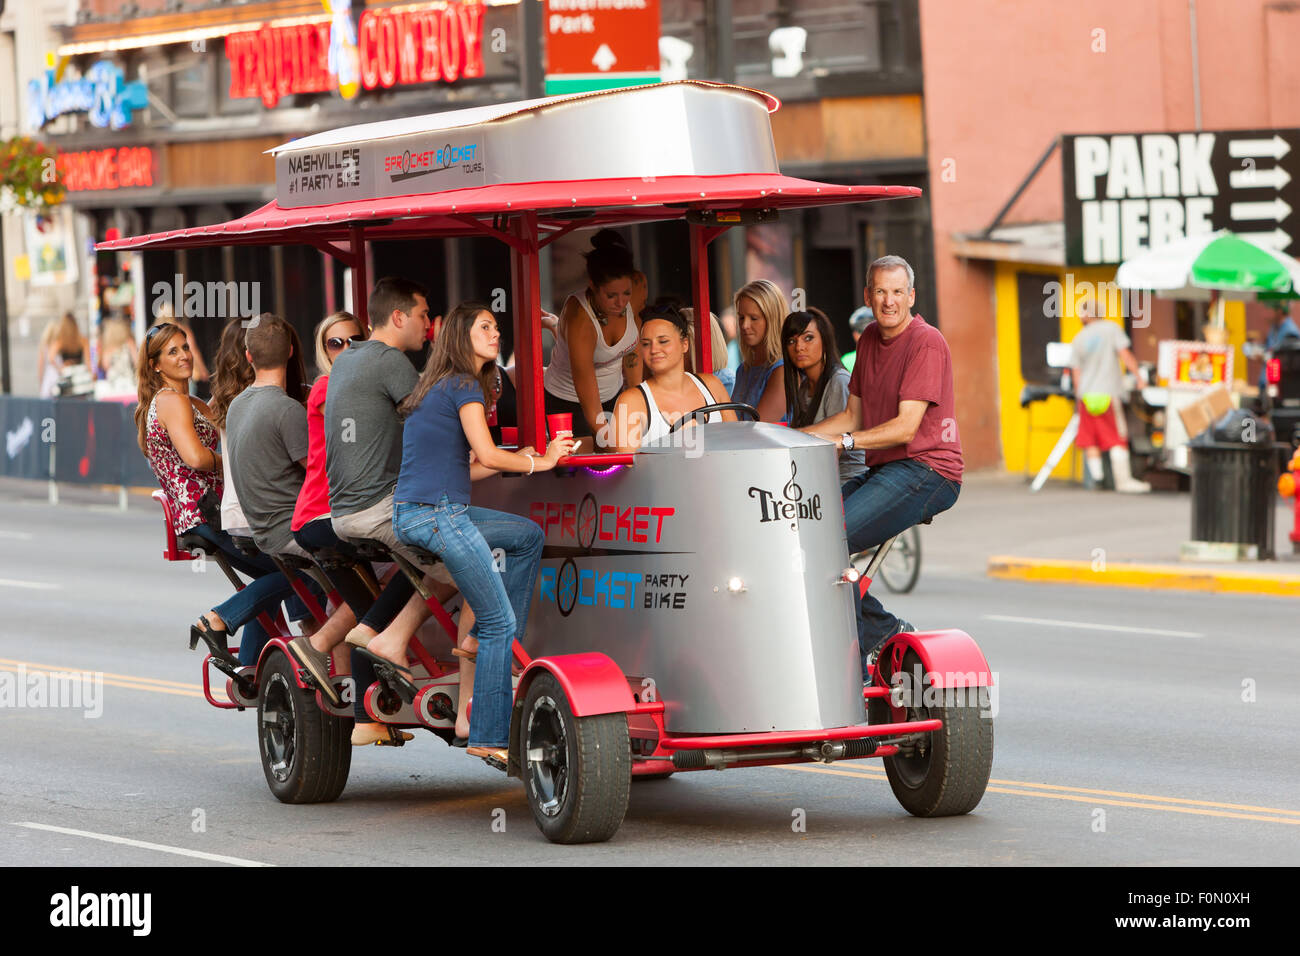 People pedal a Sprocket Rocket Party Bike on lower Broadway in Nashville, Tennessee. - Stock Image